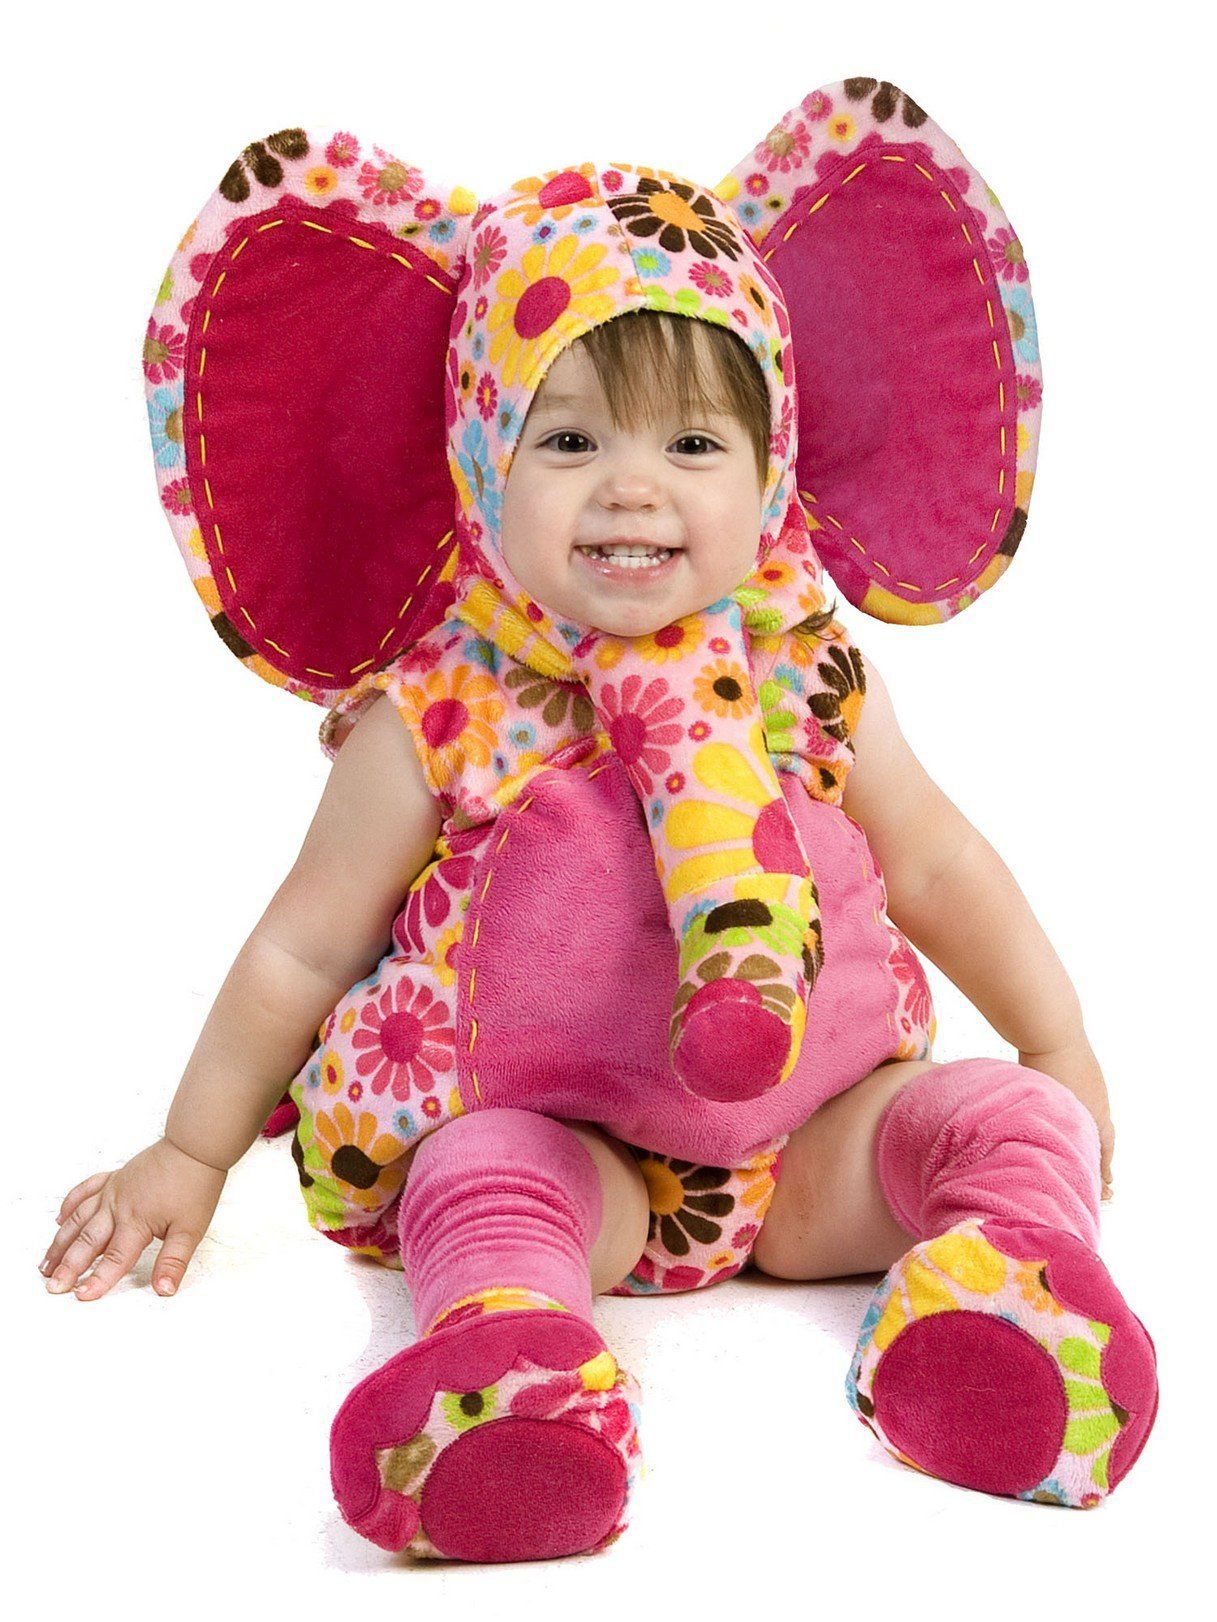 b8e0dc705cd3 Colorful Isabella the Elephant Costume - Baby Toddler Costumes for ...